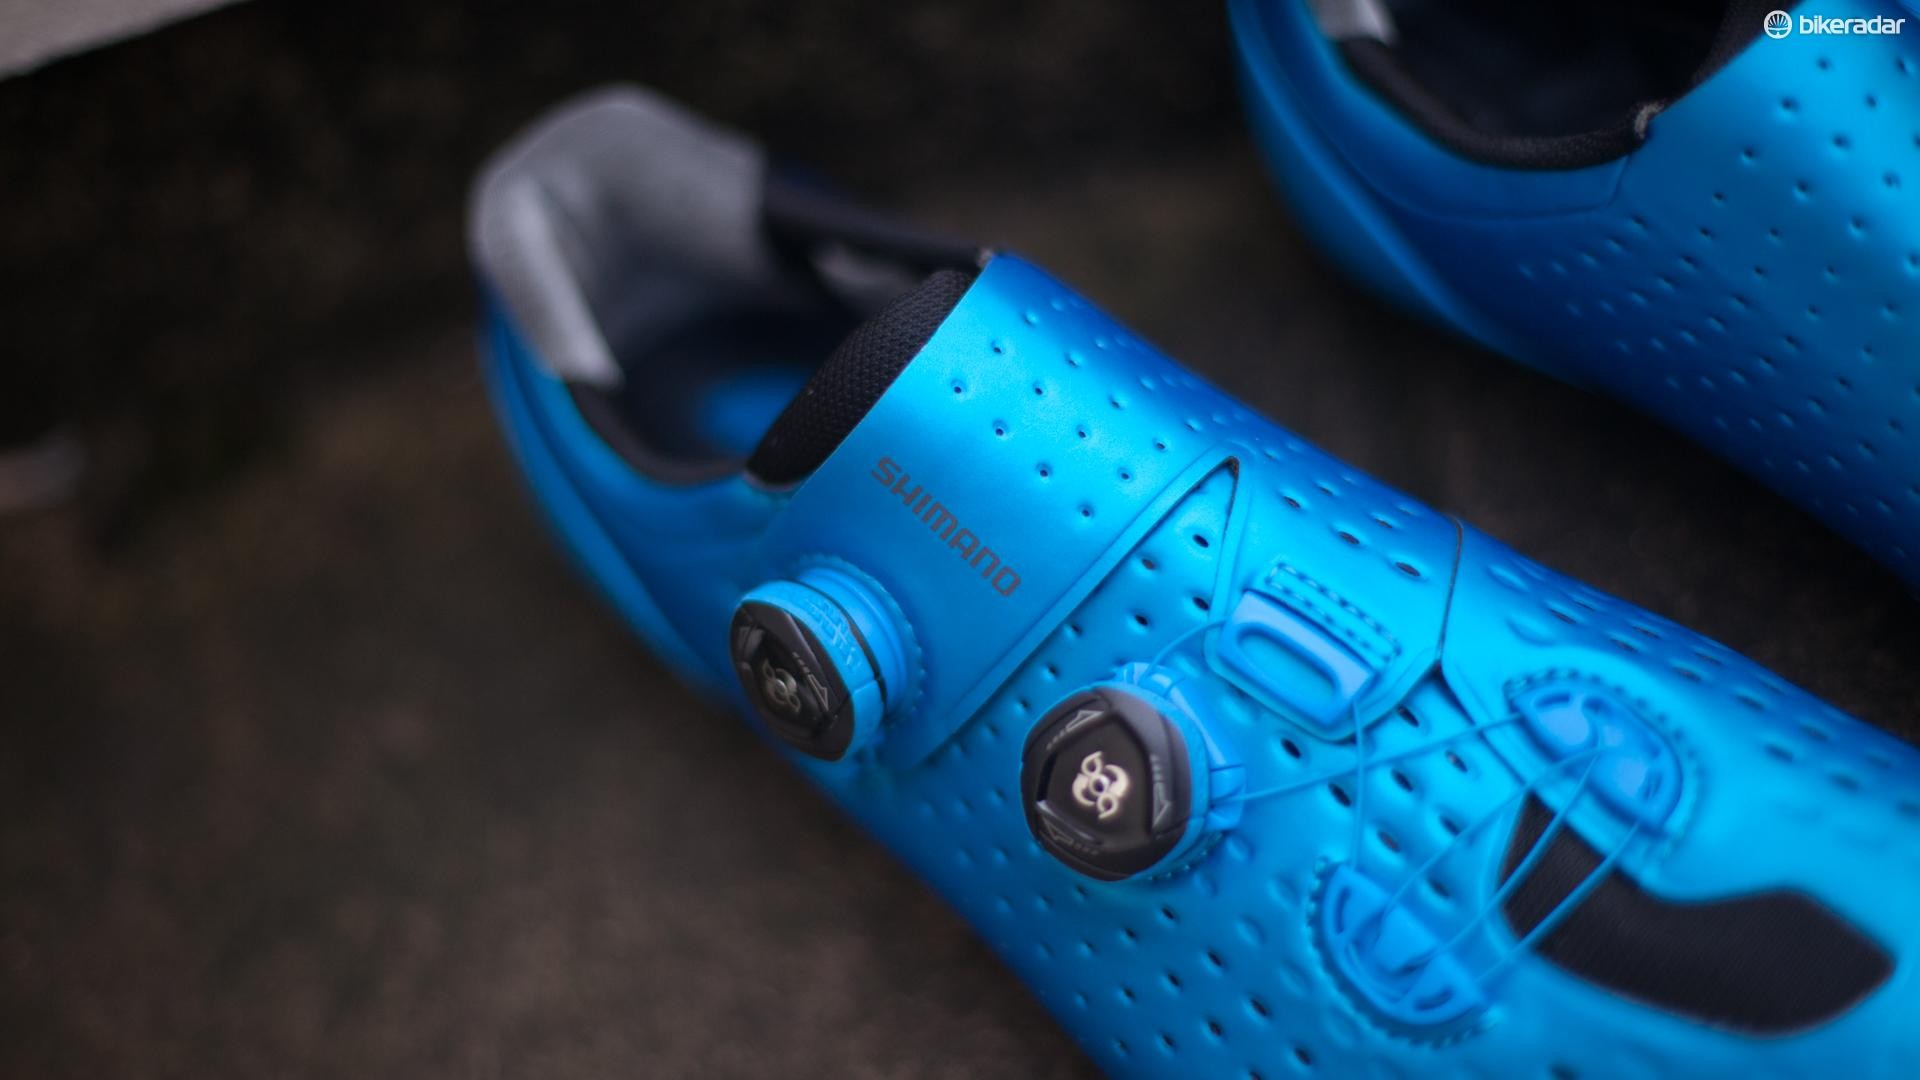 Foot fitting comfort thanks to the (custom coloured) BOA dials